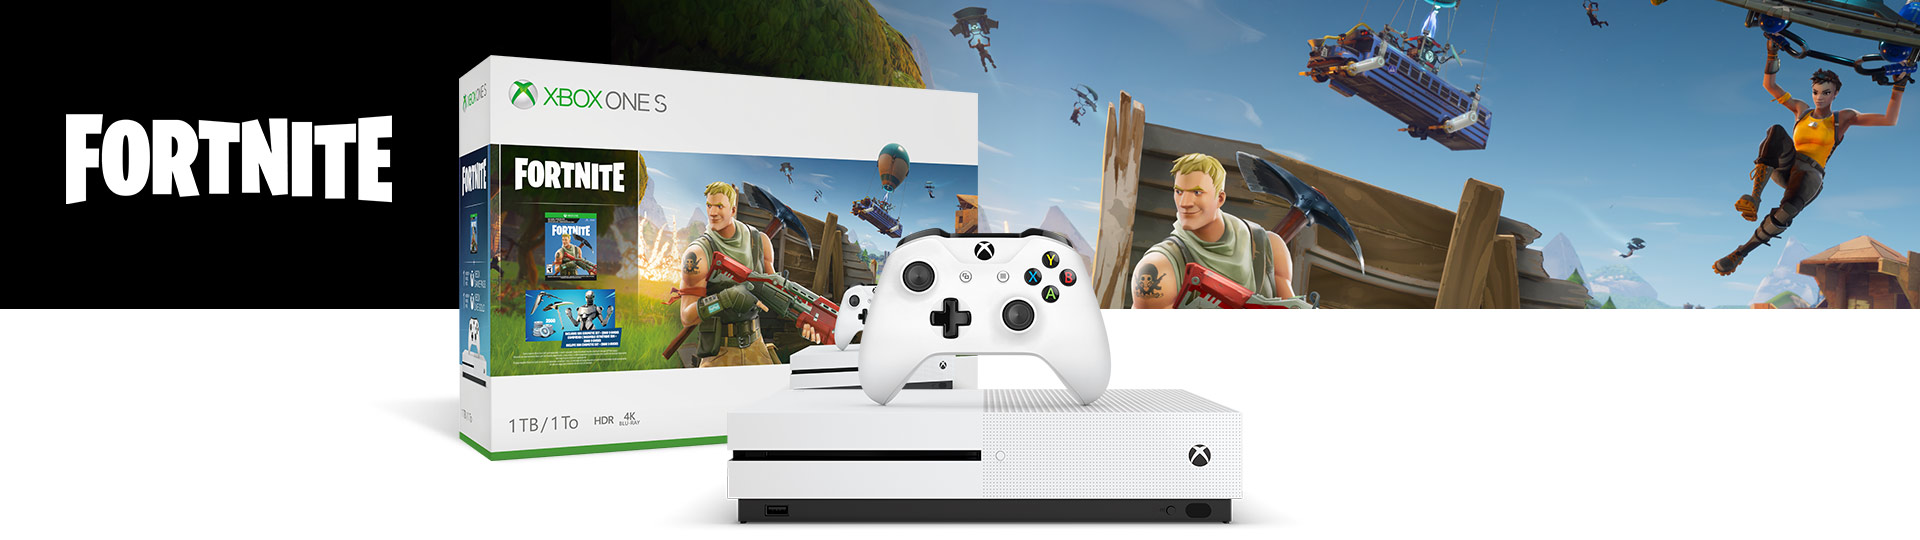 xbox one s fortnite bundle 1tb xbox